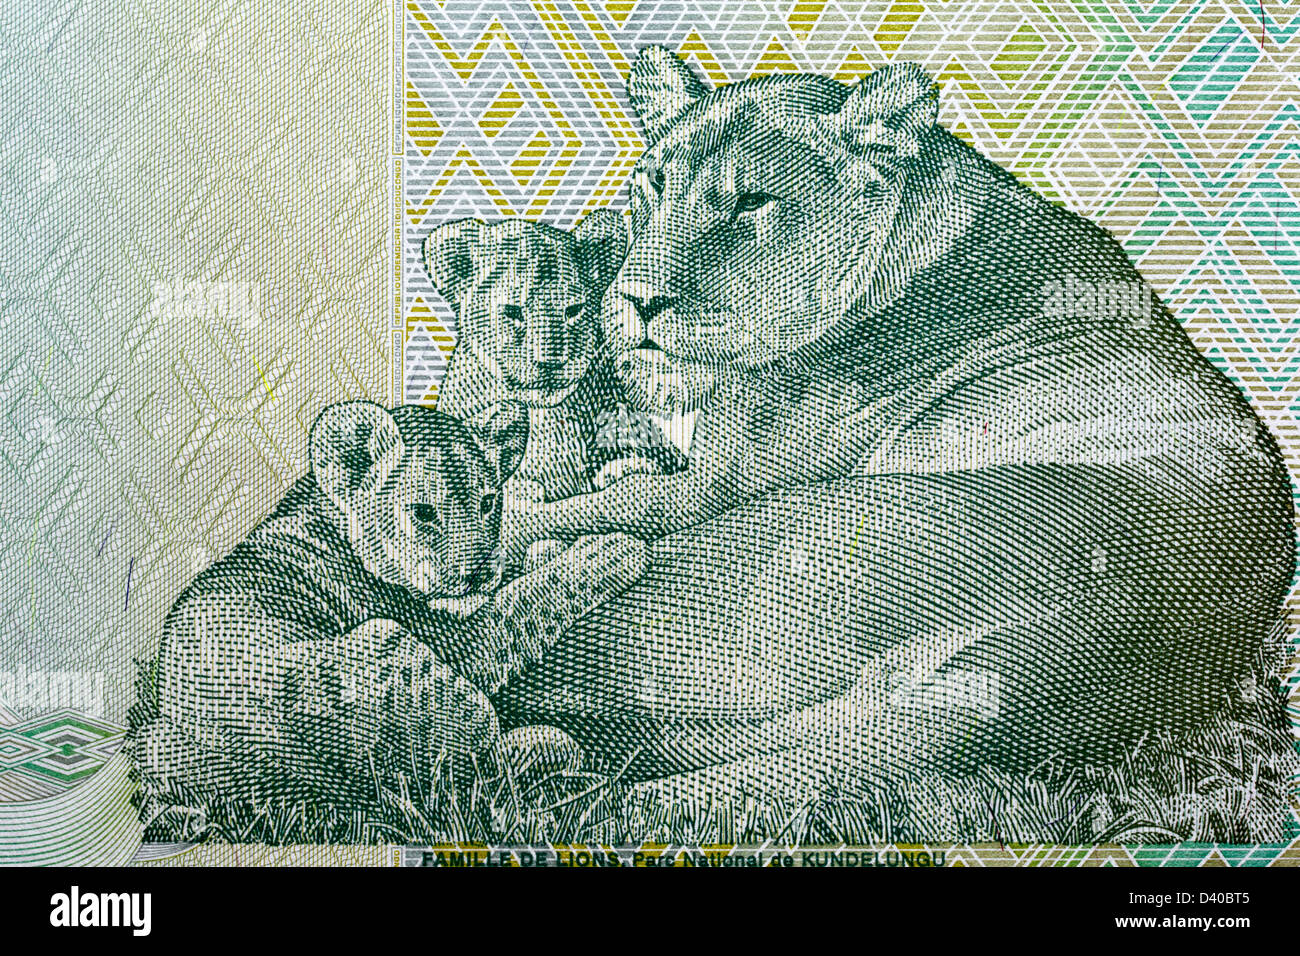 Lion with kittens from 20 Francs banknote, Congo, 2003 - Stock Image